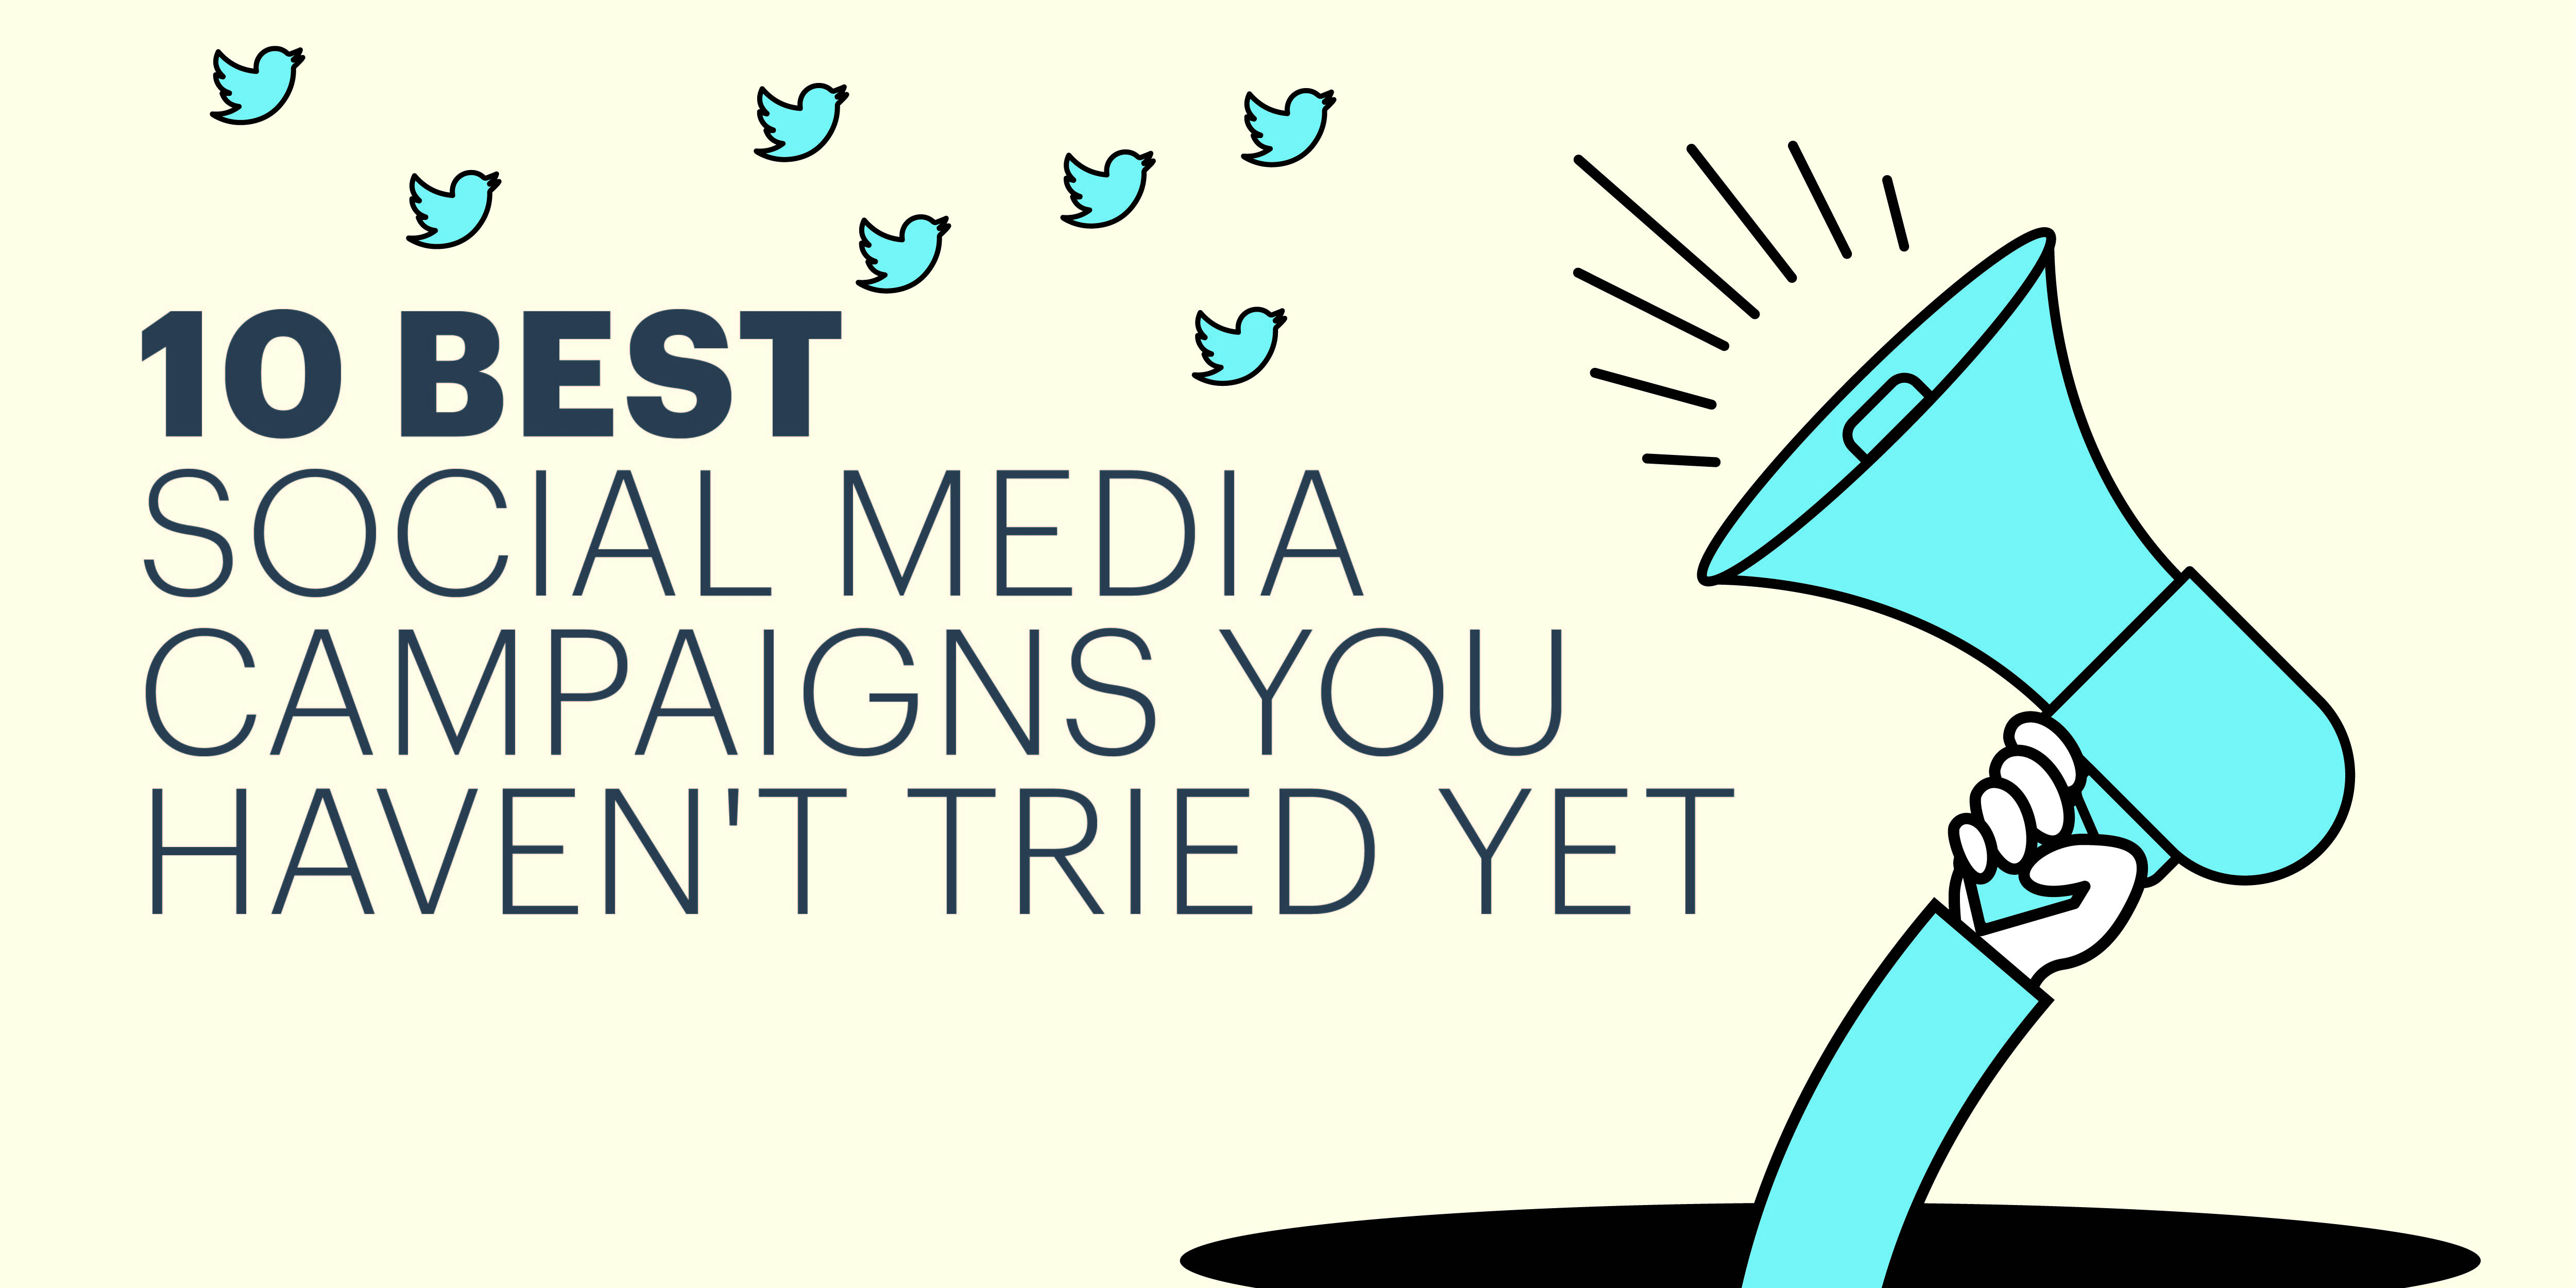 10_Best_Social_Media_Campaigns_You_Havent_Tried_Yet.jpg